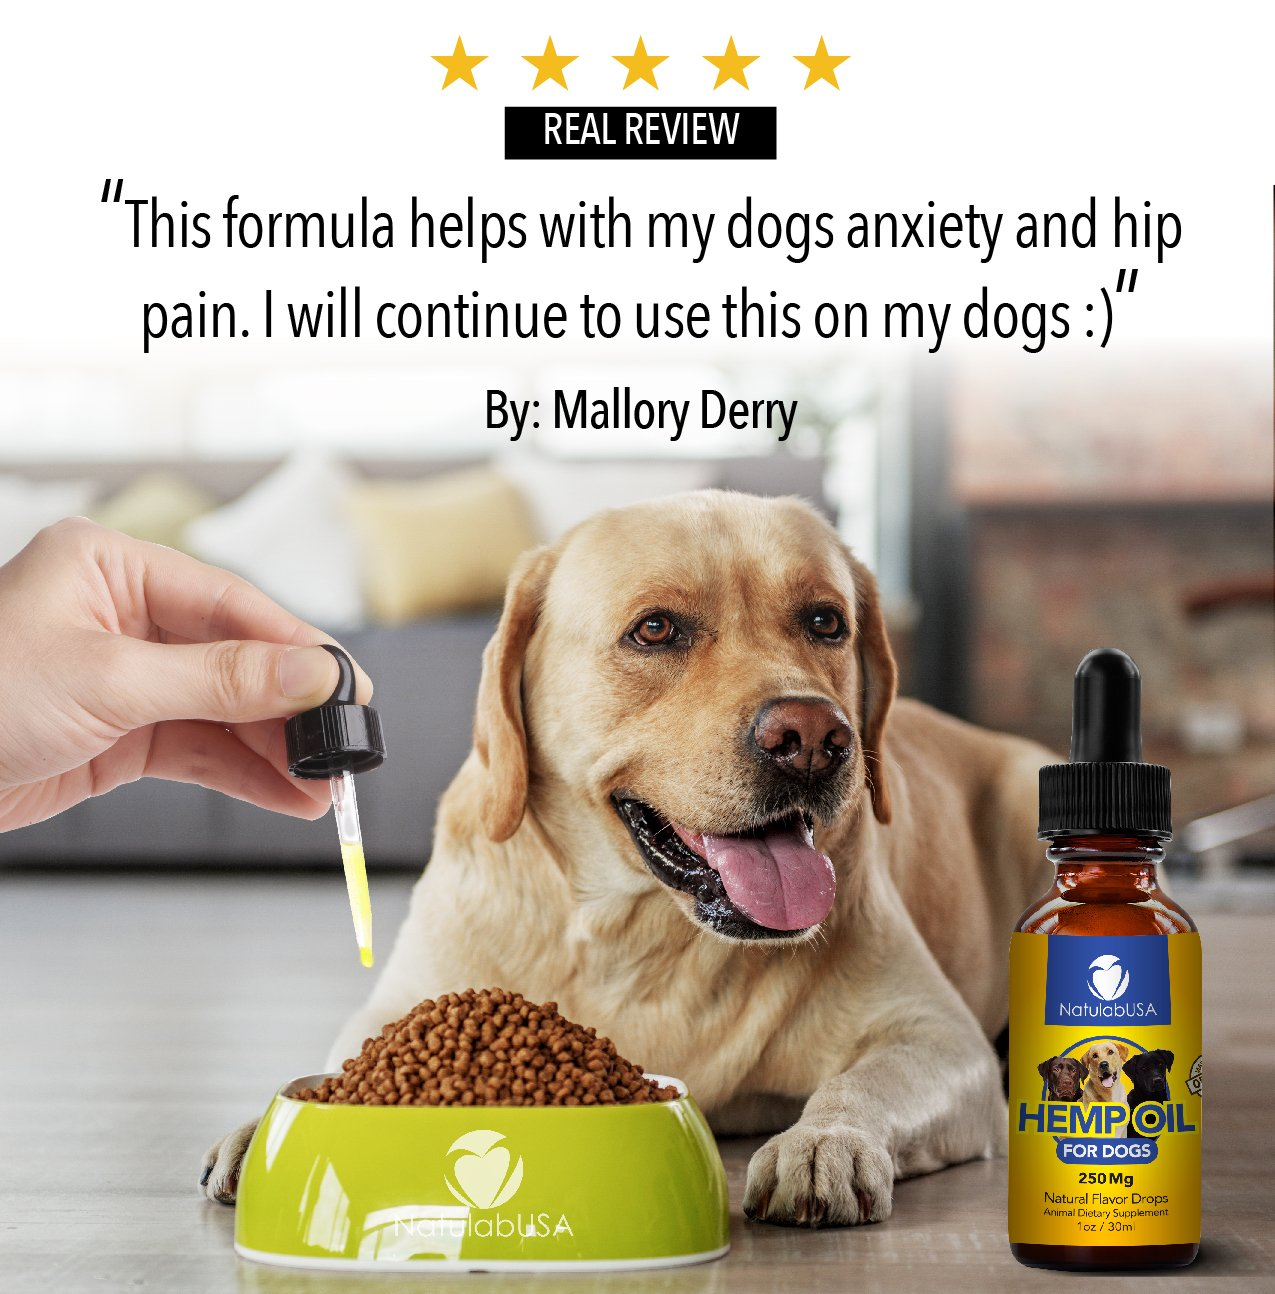 NatulabUSA - Hemp Oil For Dogs & Pets - Fast Results - Dog Anxiety & Stress  Relief - Dog Arthritis & Joint Health - APPLY TO TREATS - Separation